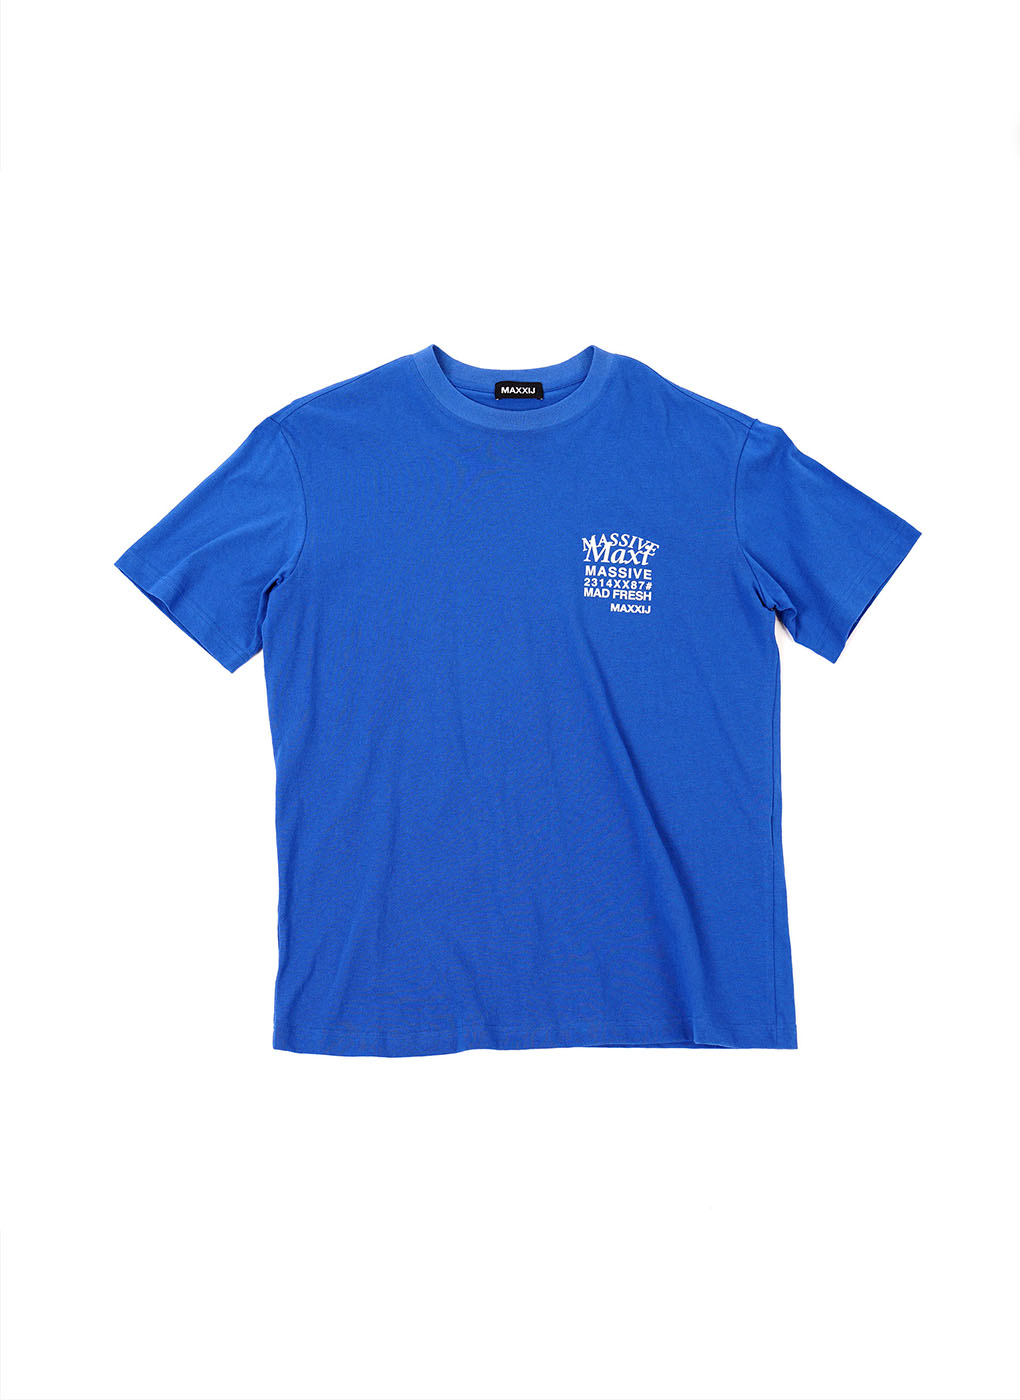 Blue 'MAXI' Printed T-shirt